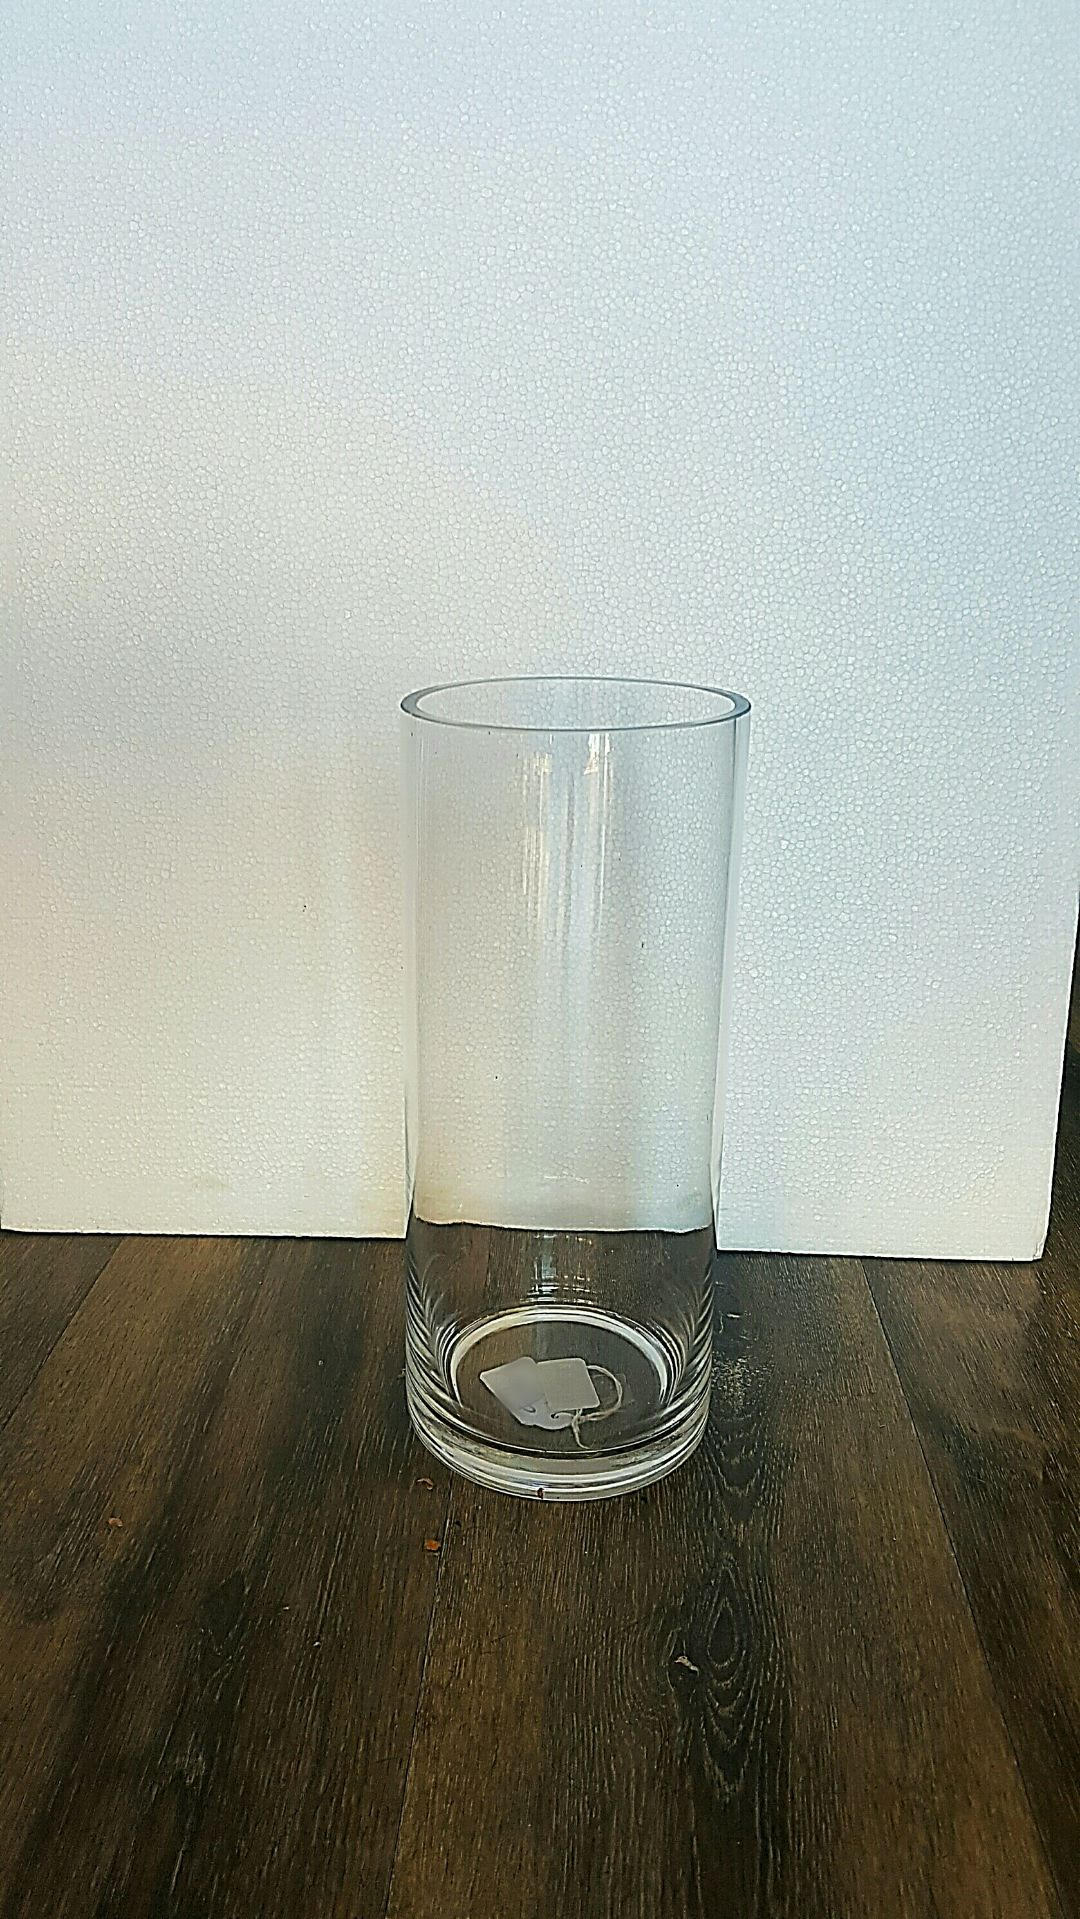 A GLASS VASE HEIGHT 28 CM X 11 CM. AS A GUIDE  PERFECT FOR BOUQUETS $100  UPWARDS, SIZE WISE TO FILL.